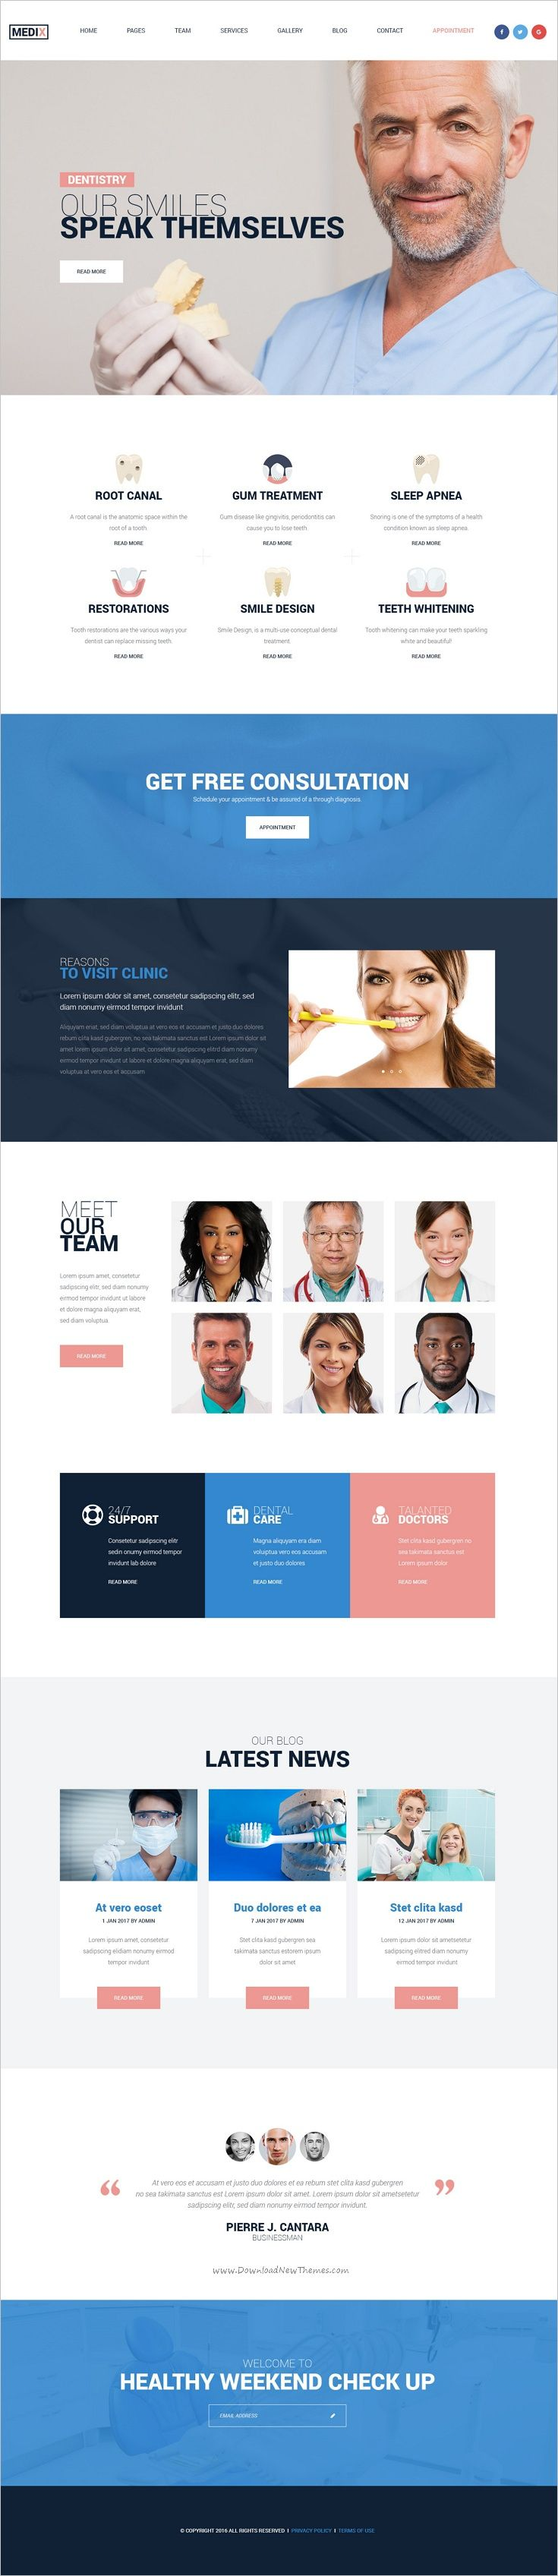 Medix Is An Wonderful Psd Template For Medical Clinic Websites With 7 Homepage Layouts And 27 Psd Pages Download Now Http Clinic Healthcare Centers Medical